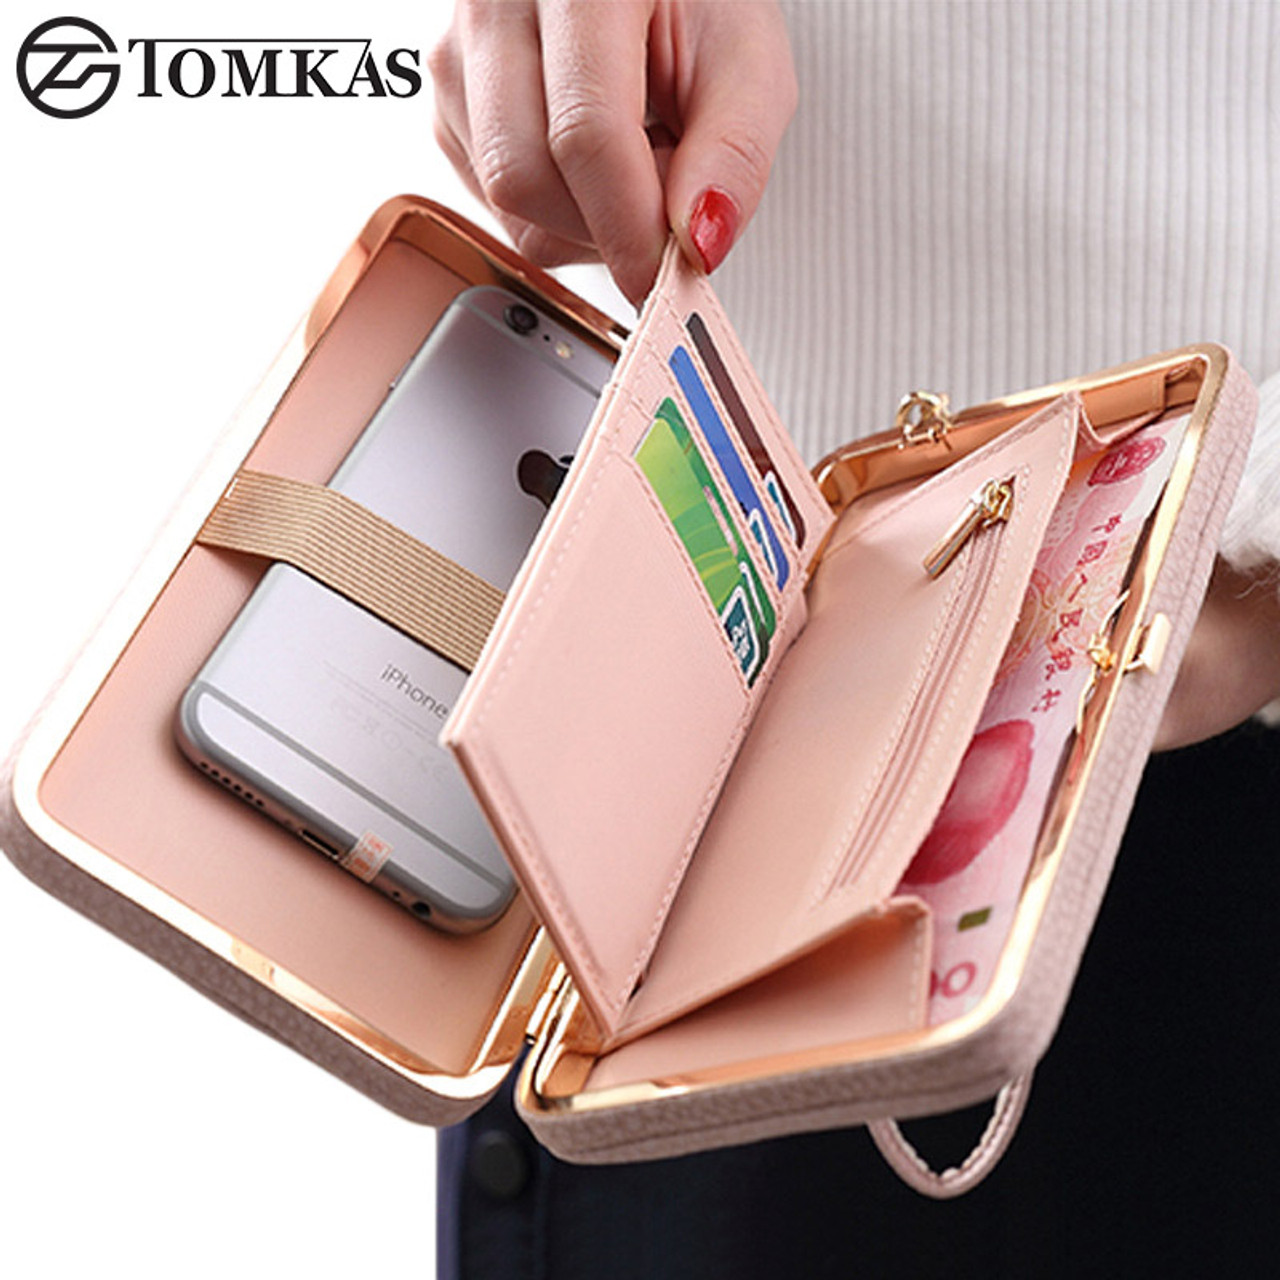 588789c20f5 Luxury Women Wallet Phone Bag Leather Case For iPhone 7 6 6s Plus 5s 5 For  ...